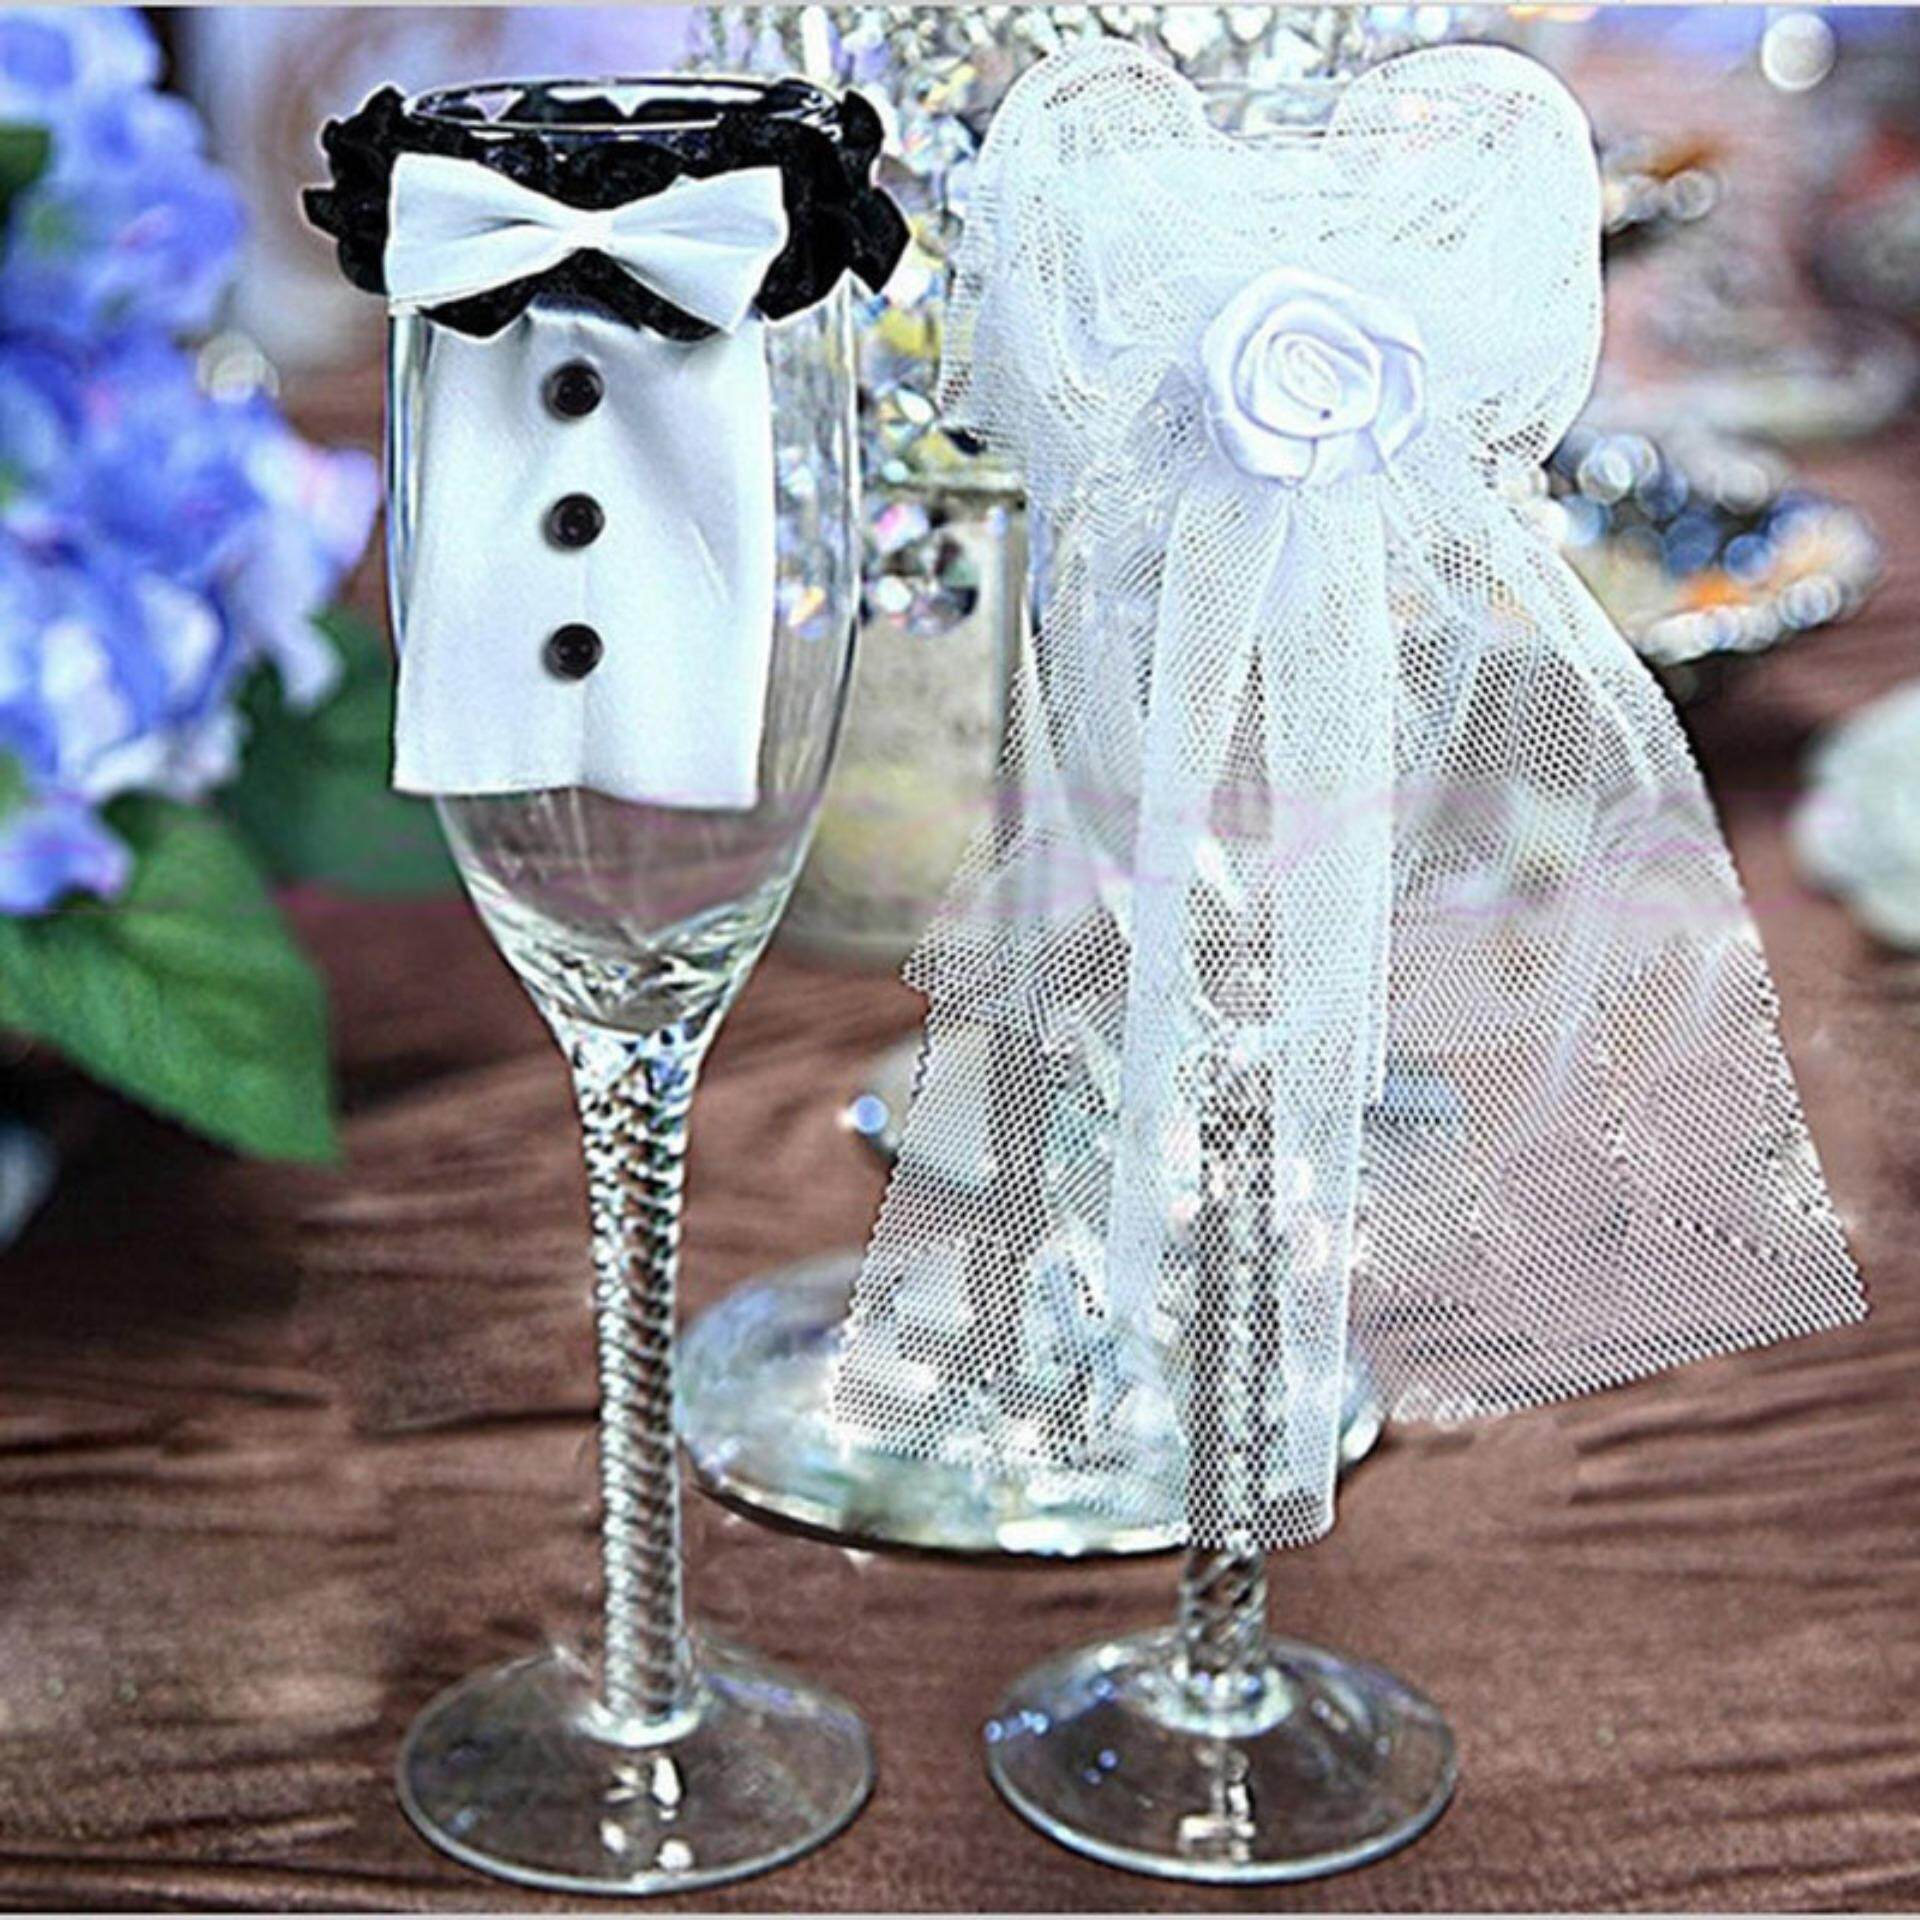 Sissi Couple Wedding Party Wine Glass Decor Bride Groom Tux Bridal Veil Toast Gift By Sissi Princess.